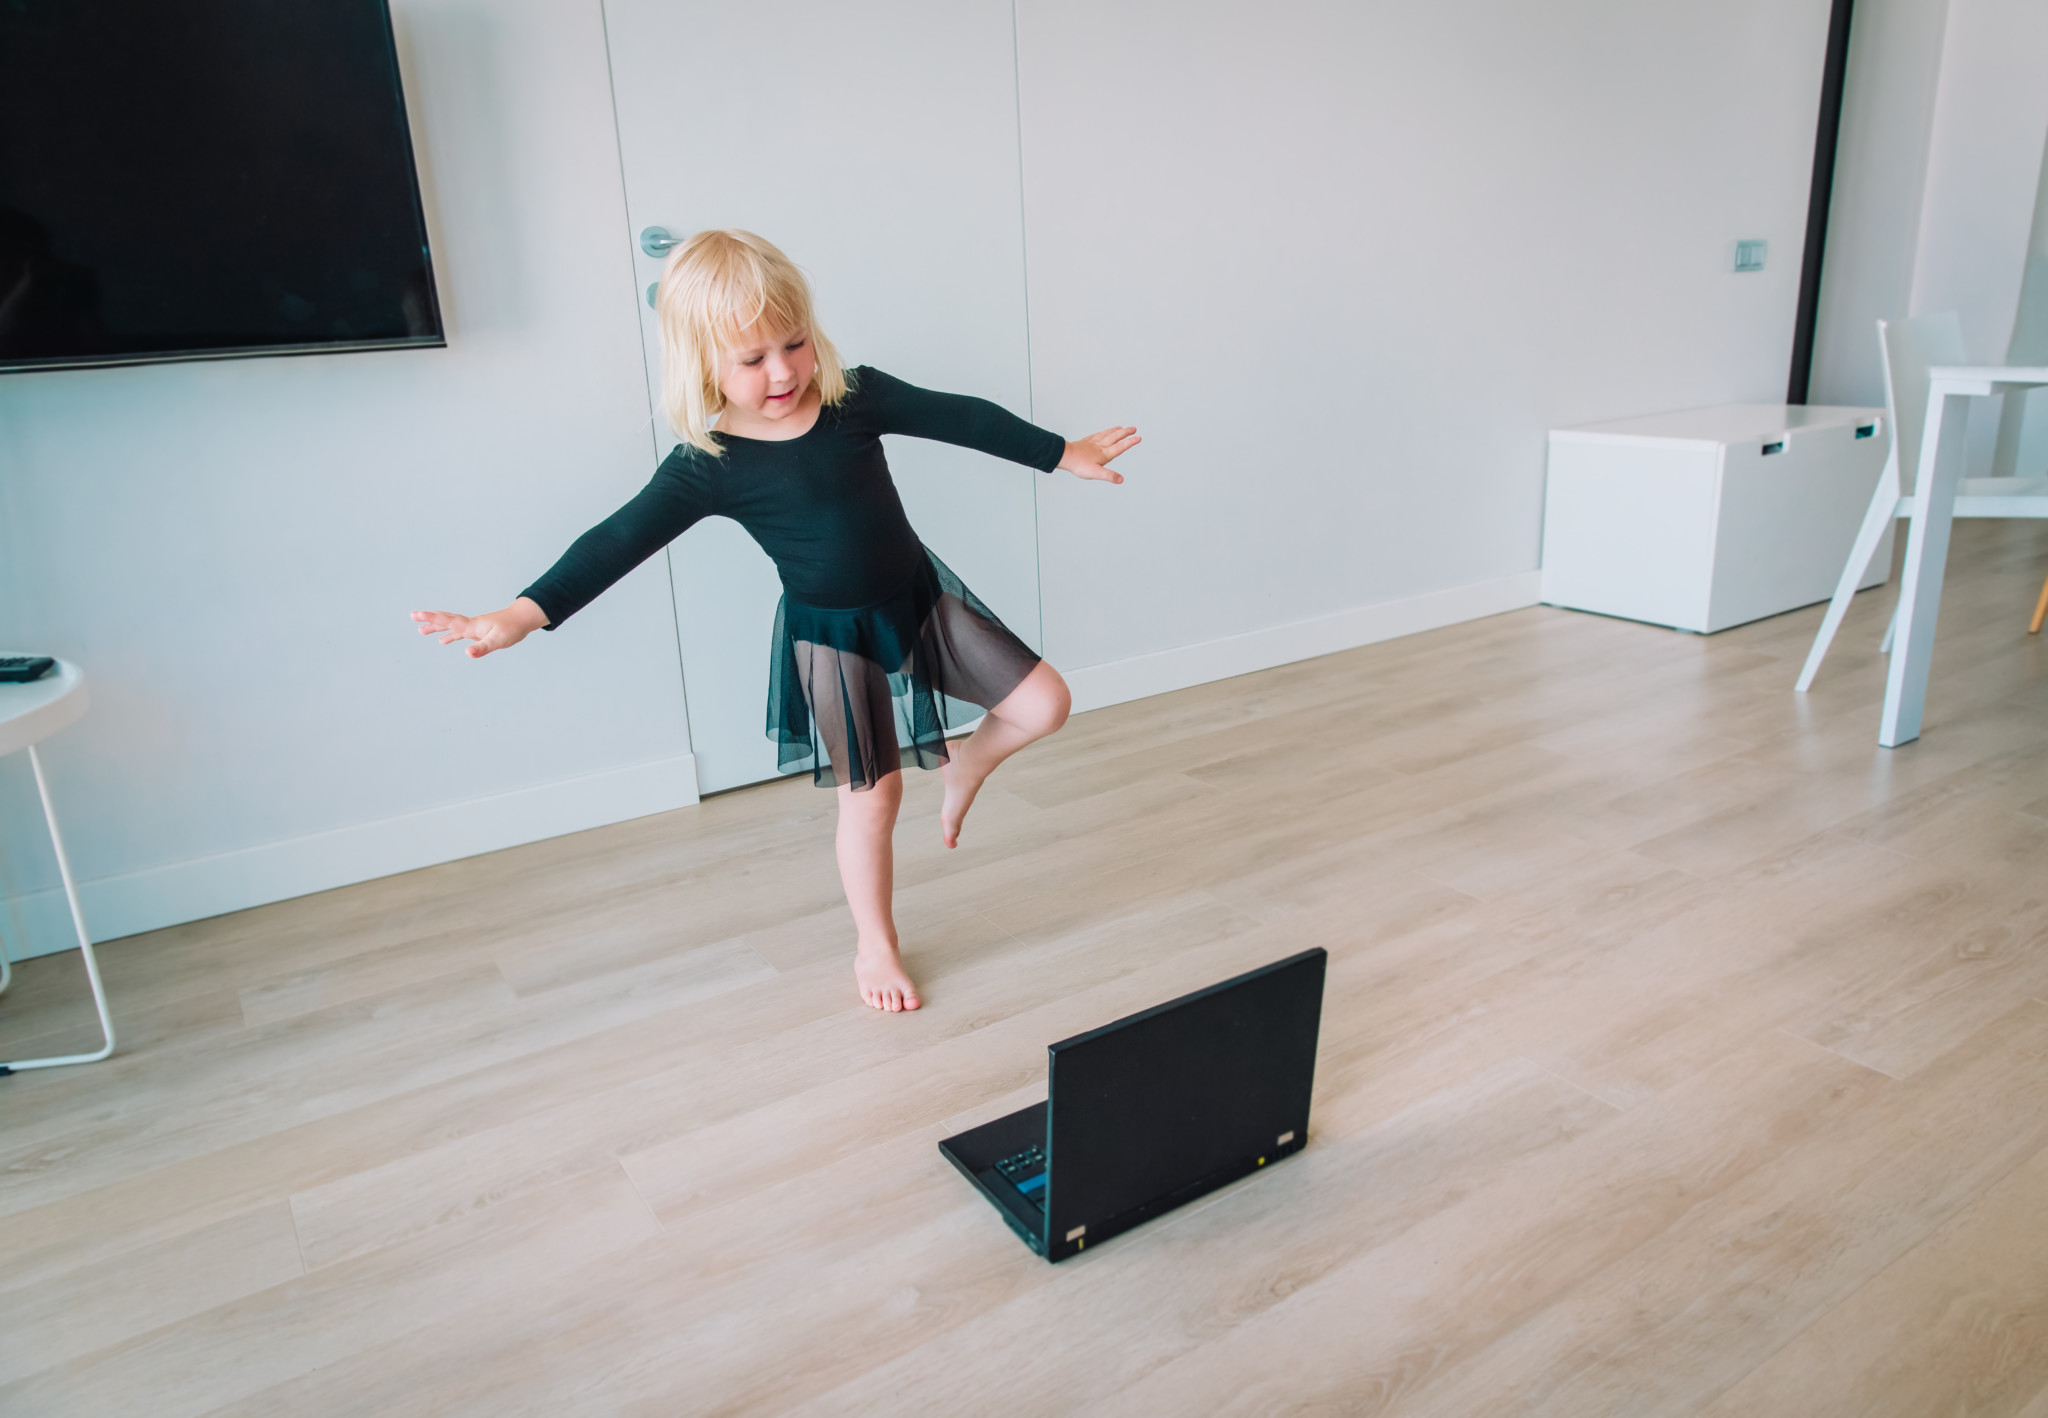 Ballet or gymastics lesson online. Remote learning for kids while stying home.